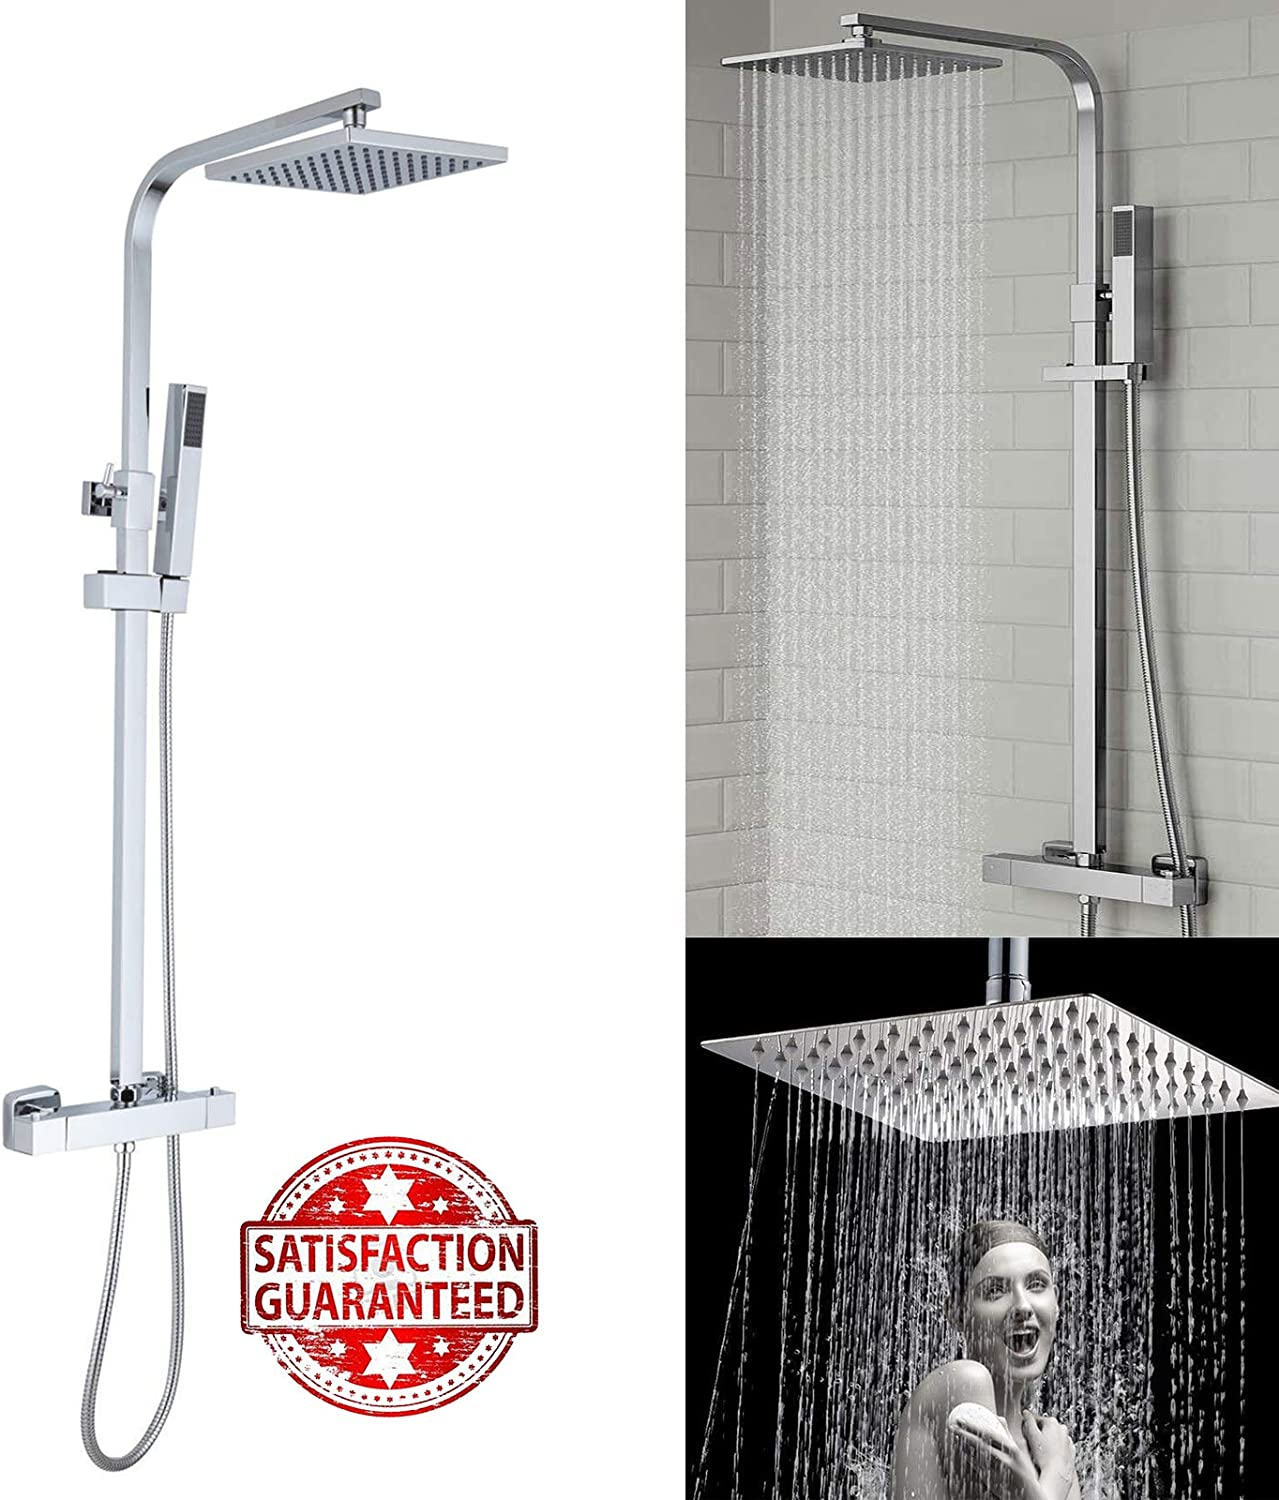 Bathroom Thermostatic Luxury Shower System, Rain Shower Mixer Valve Set with Square 200MM Showerhead, Handheld Shower, Chrome Finish+Adjustable Rail & 2.5M Hose All in One-Easy to Install